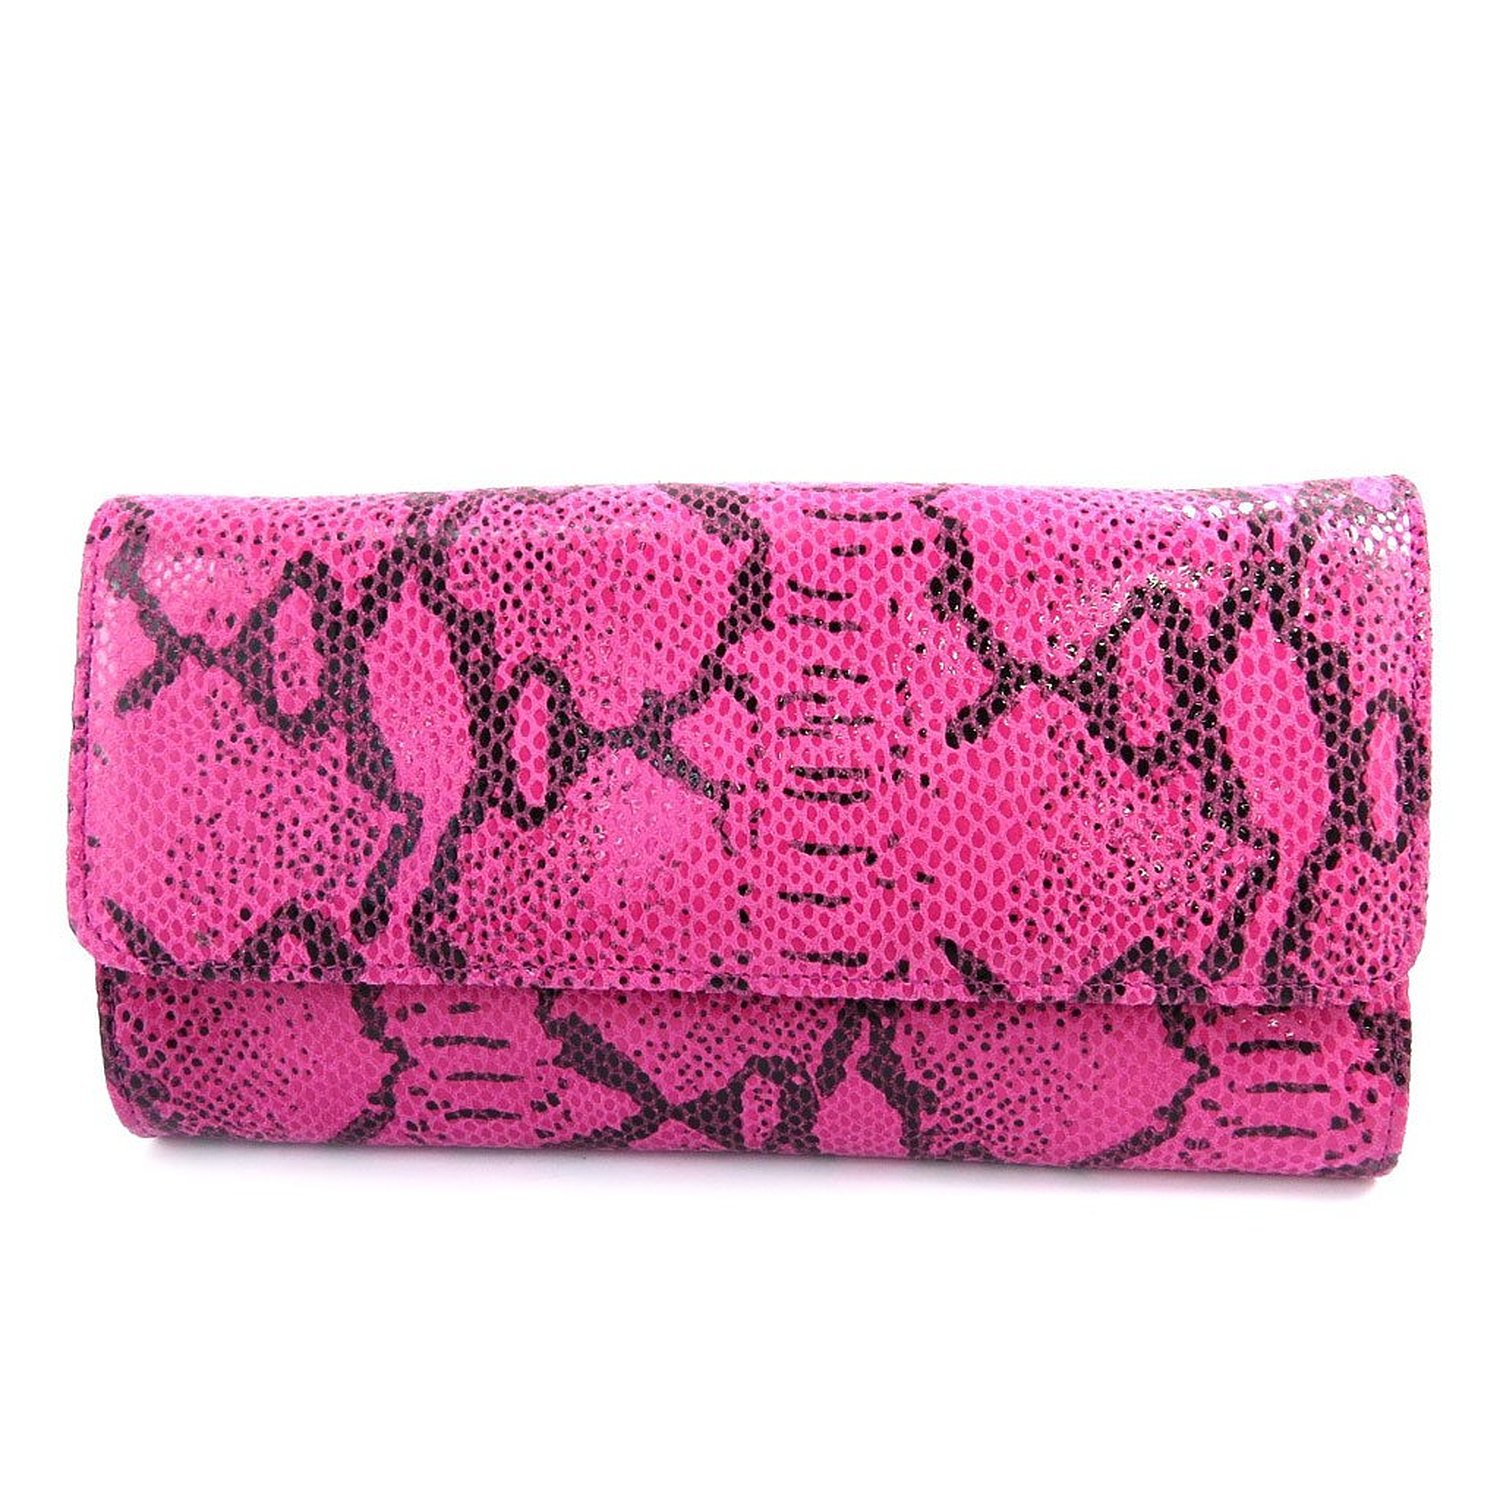 Amazon.com: leather pouch bag 'frandi'rose python (2 folds).: clothing